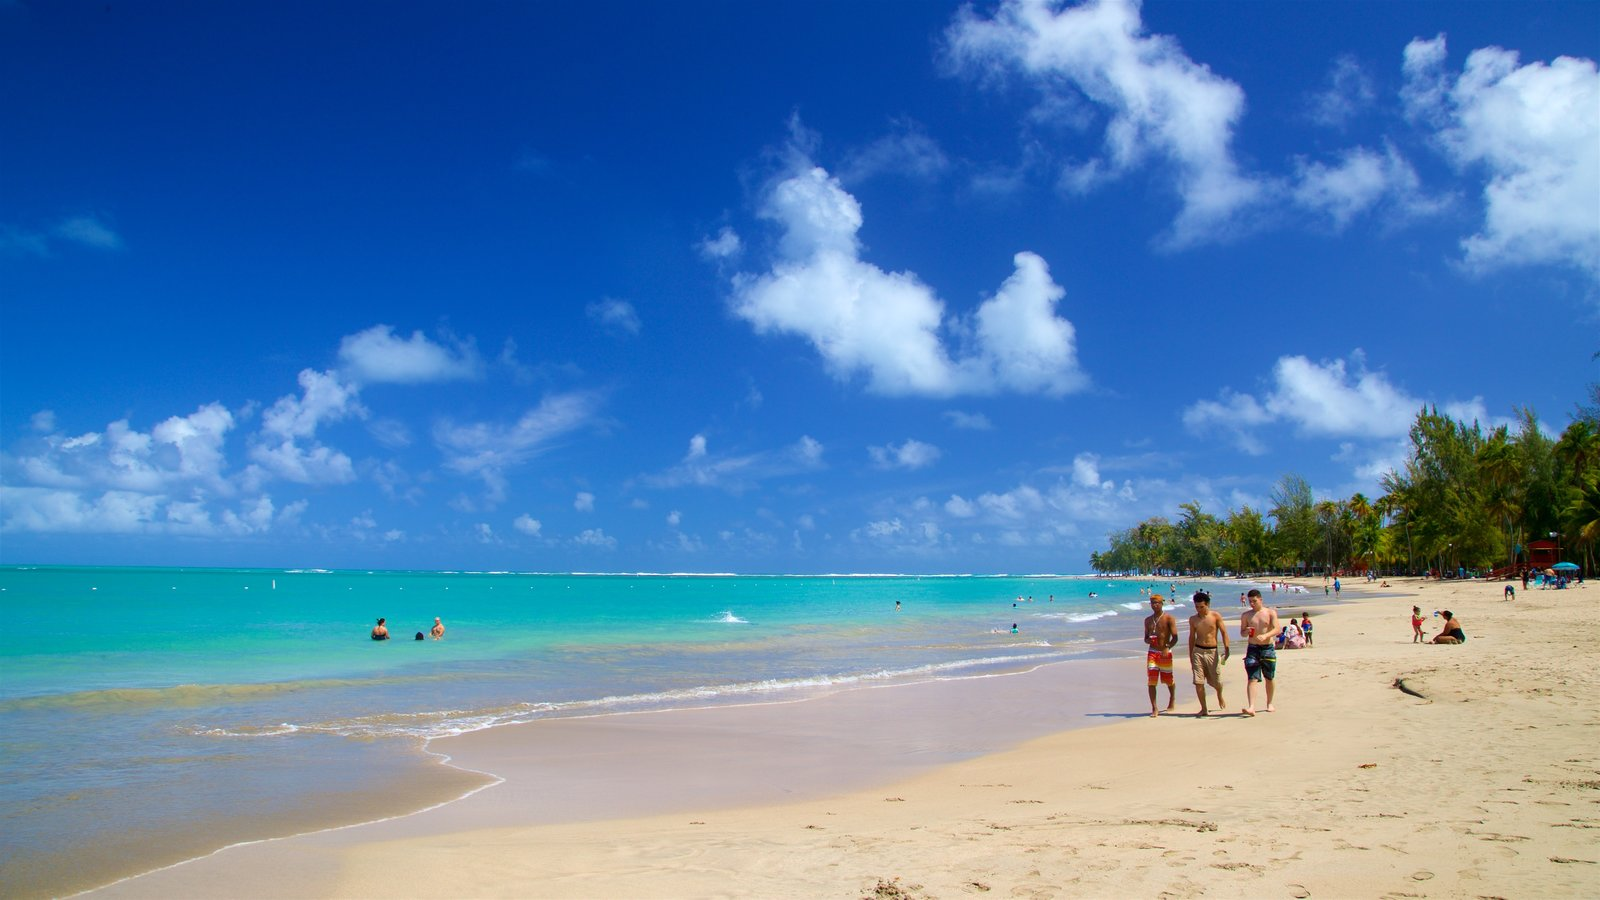 Beach Pictures View Images Of Luquillo Playa Azul In Puerto Rico